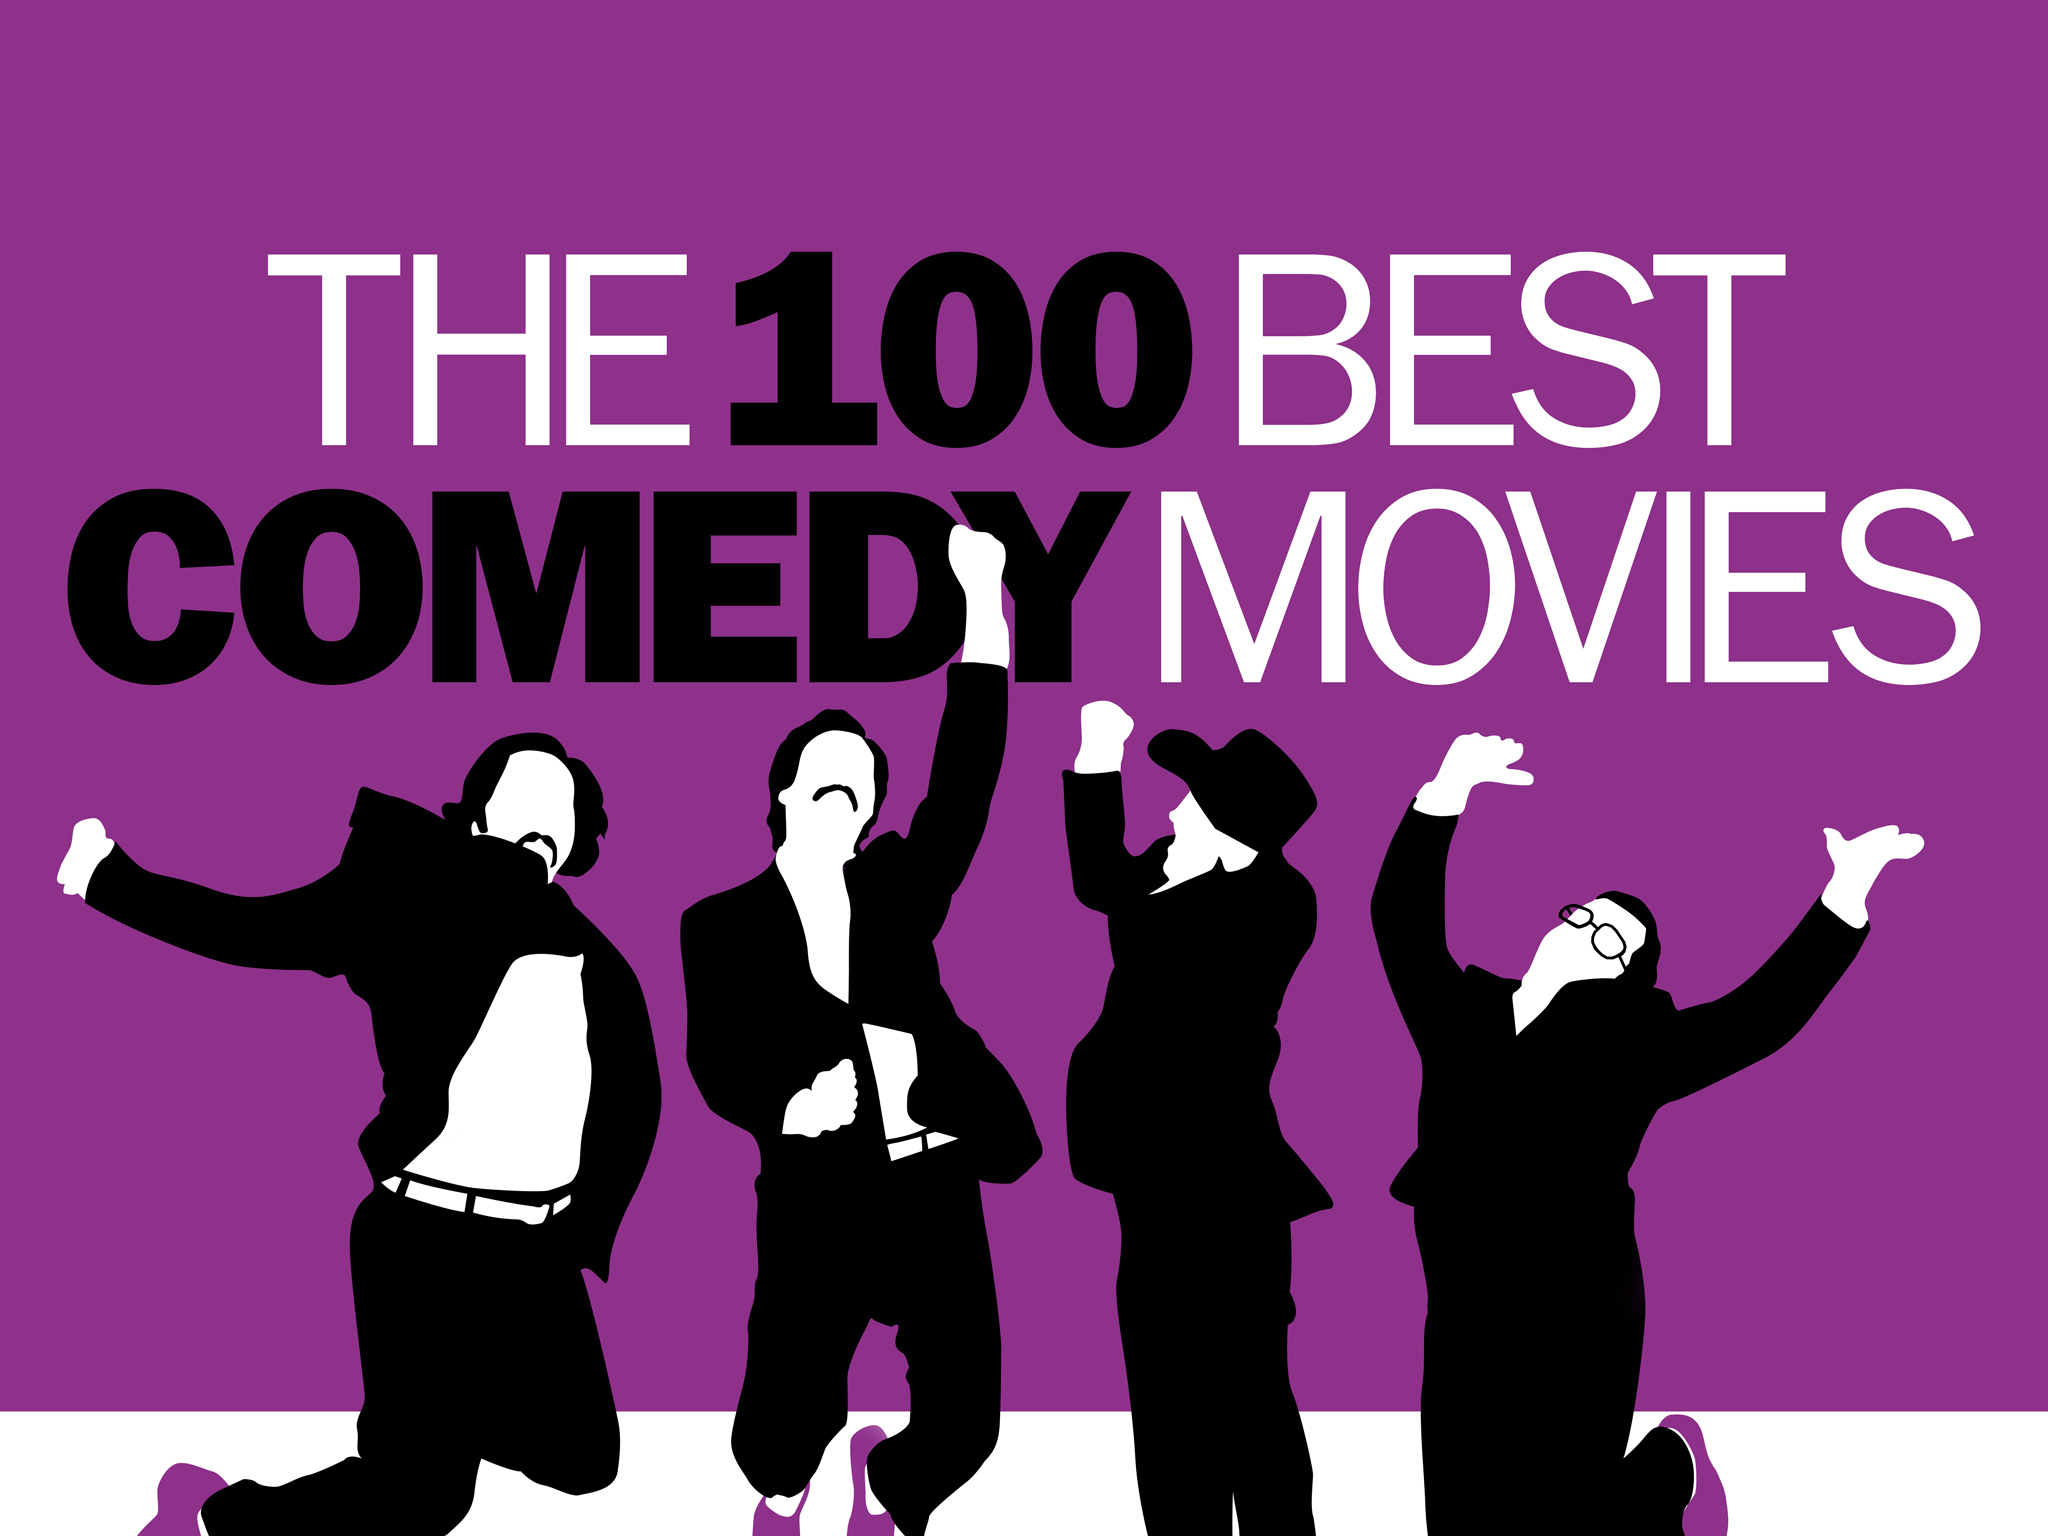 The 100 best comedy movies